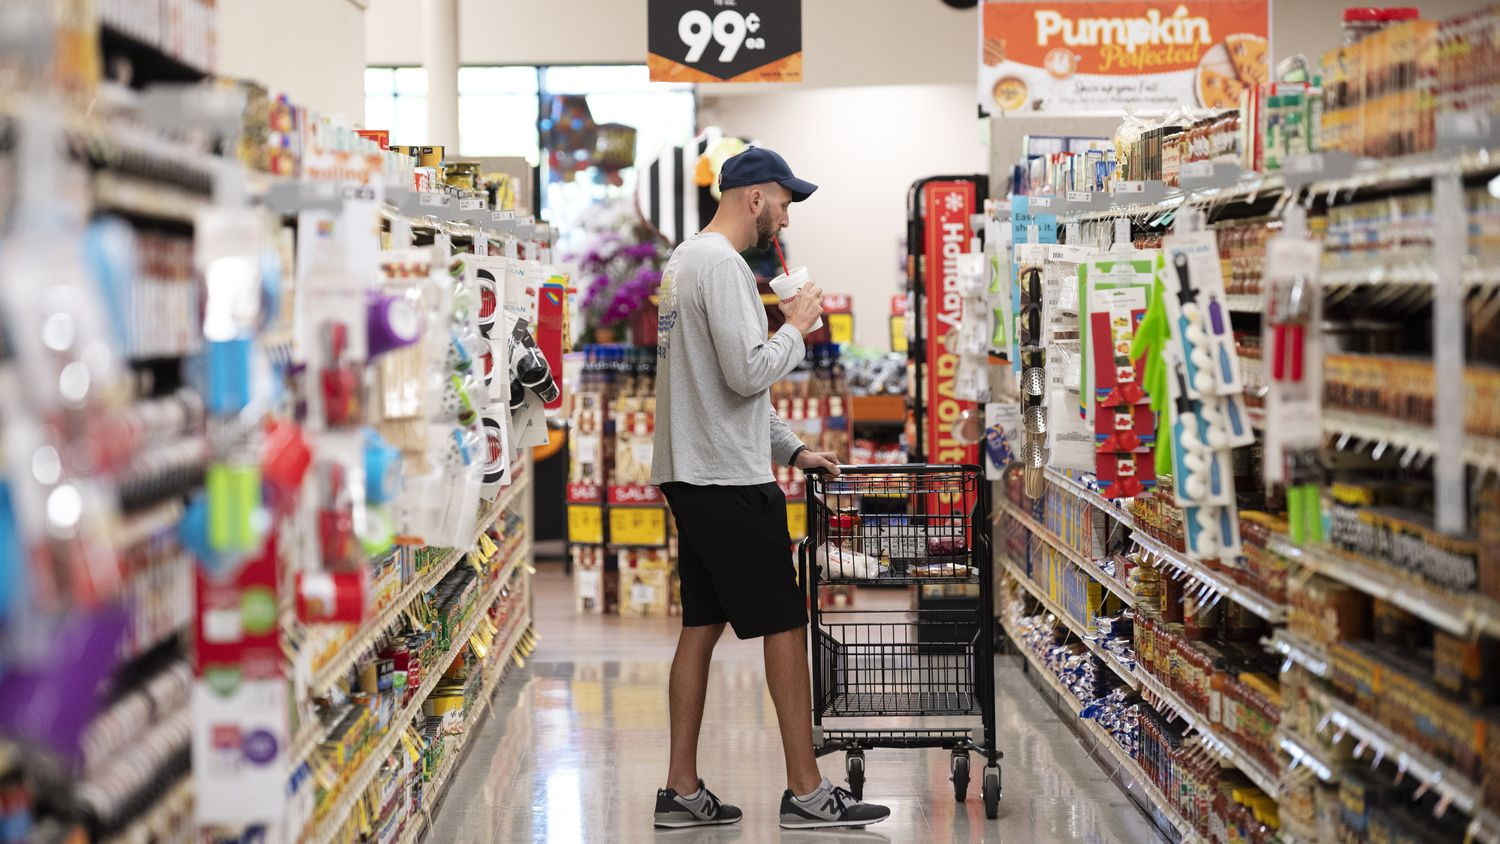 Brad Seaton shops for pasta and sauce inside the Tom Thumb supermarket at Custer Parkway in Richardson.